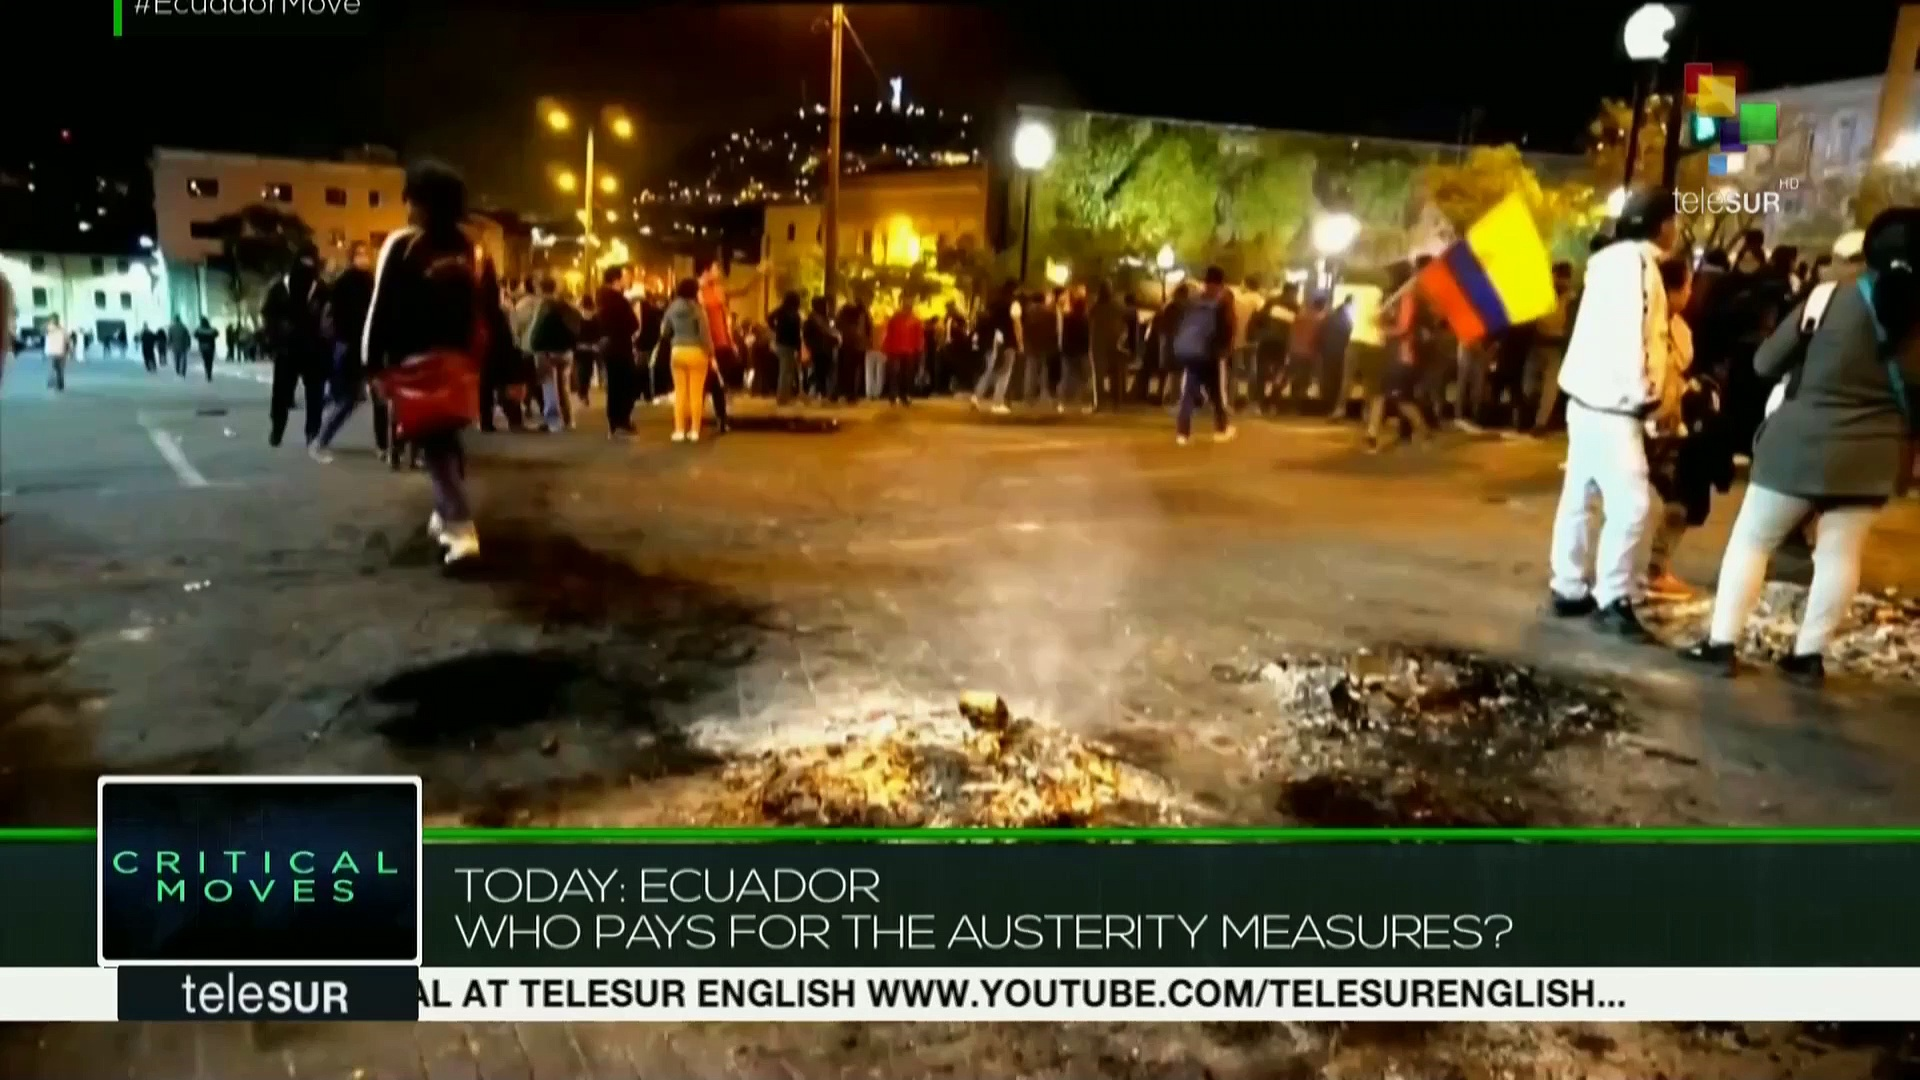 Critical Moves: Ecuador: Who Pays for the Austerity Measures?